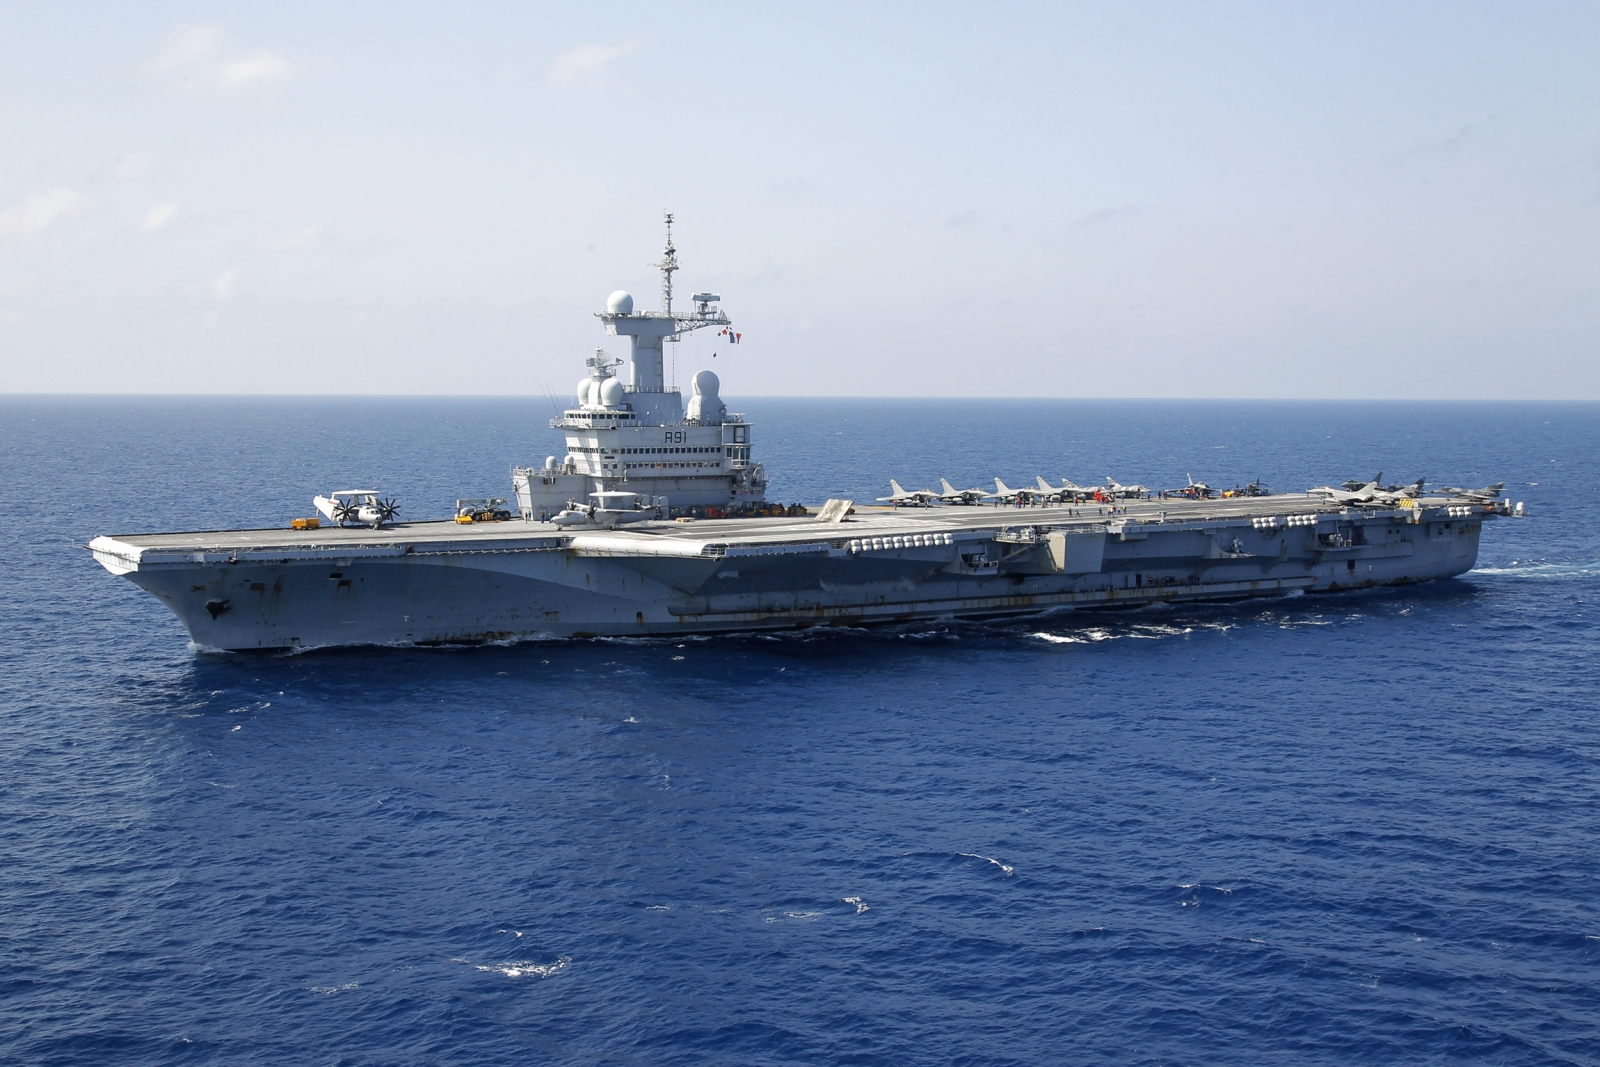 Frances Charles de Gaulle aircraft carrier ISIS Charlie Hebdo